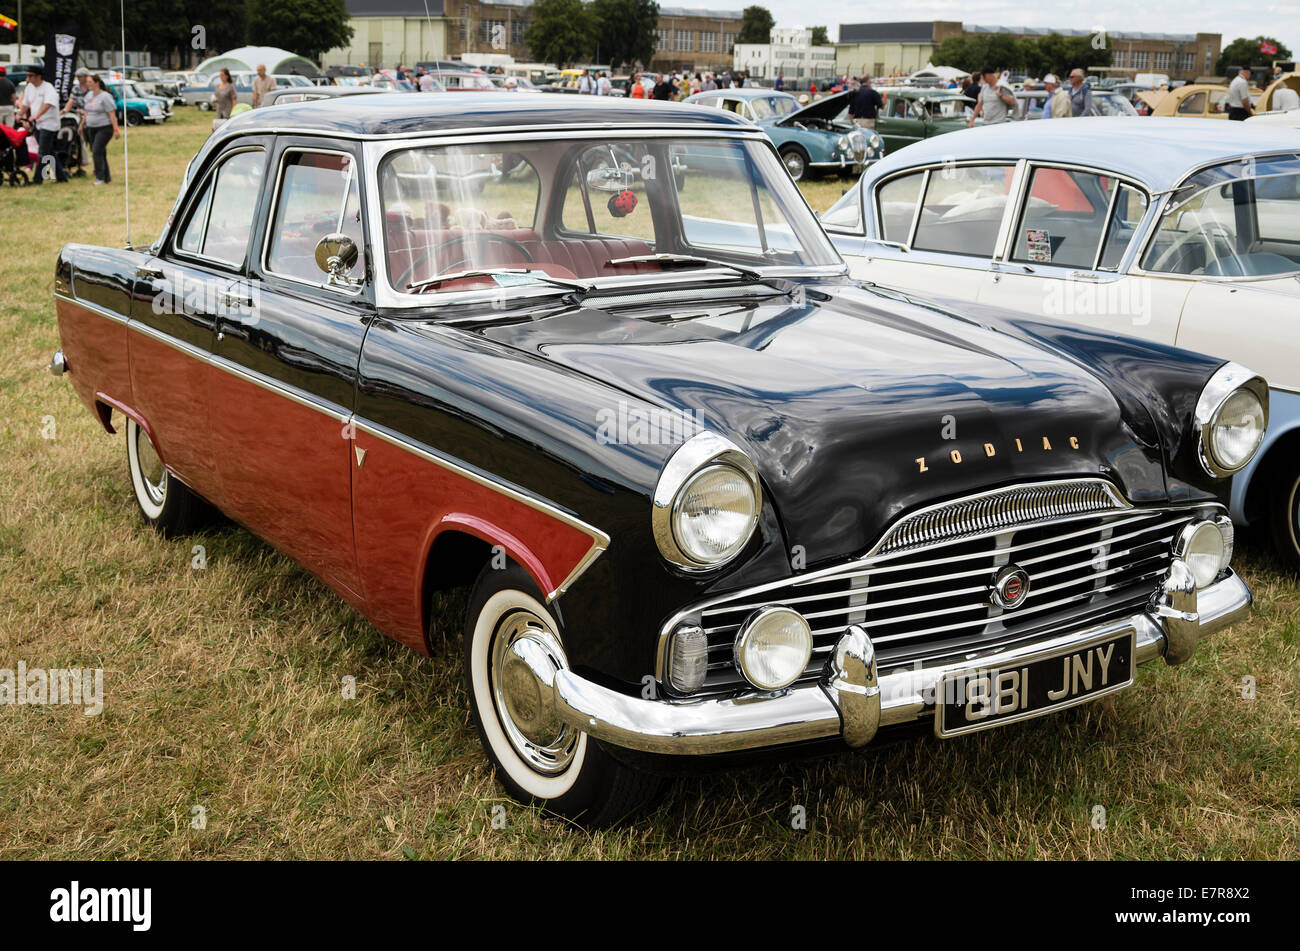 Ford Zodiac Cars For Sale